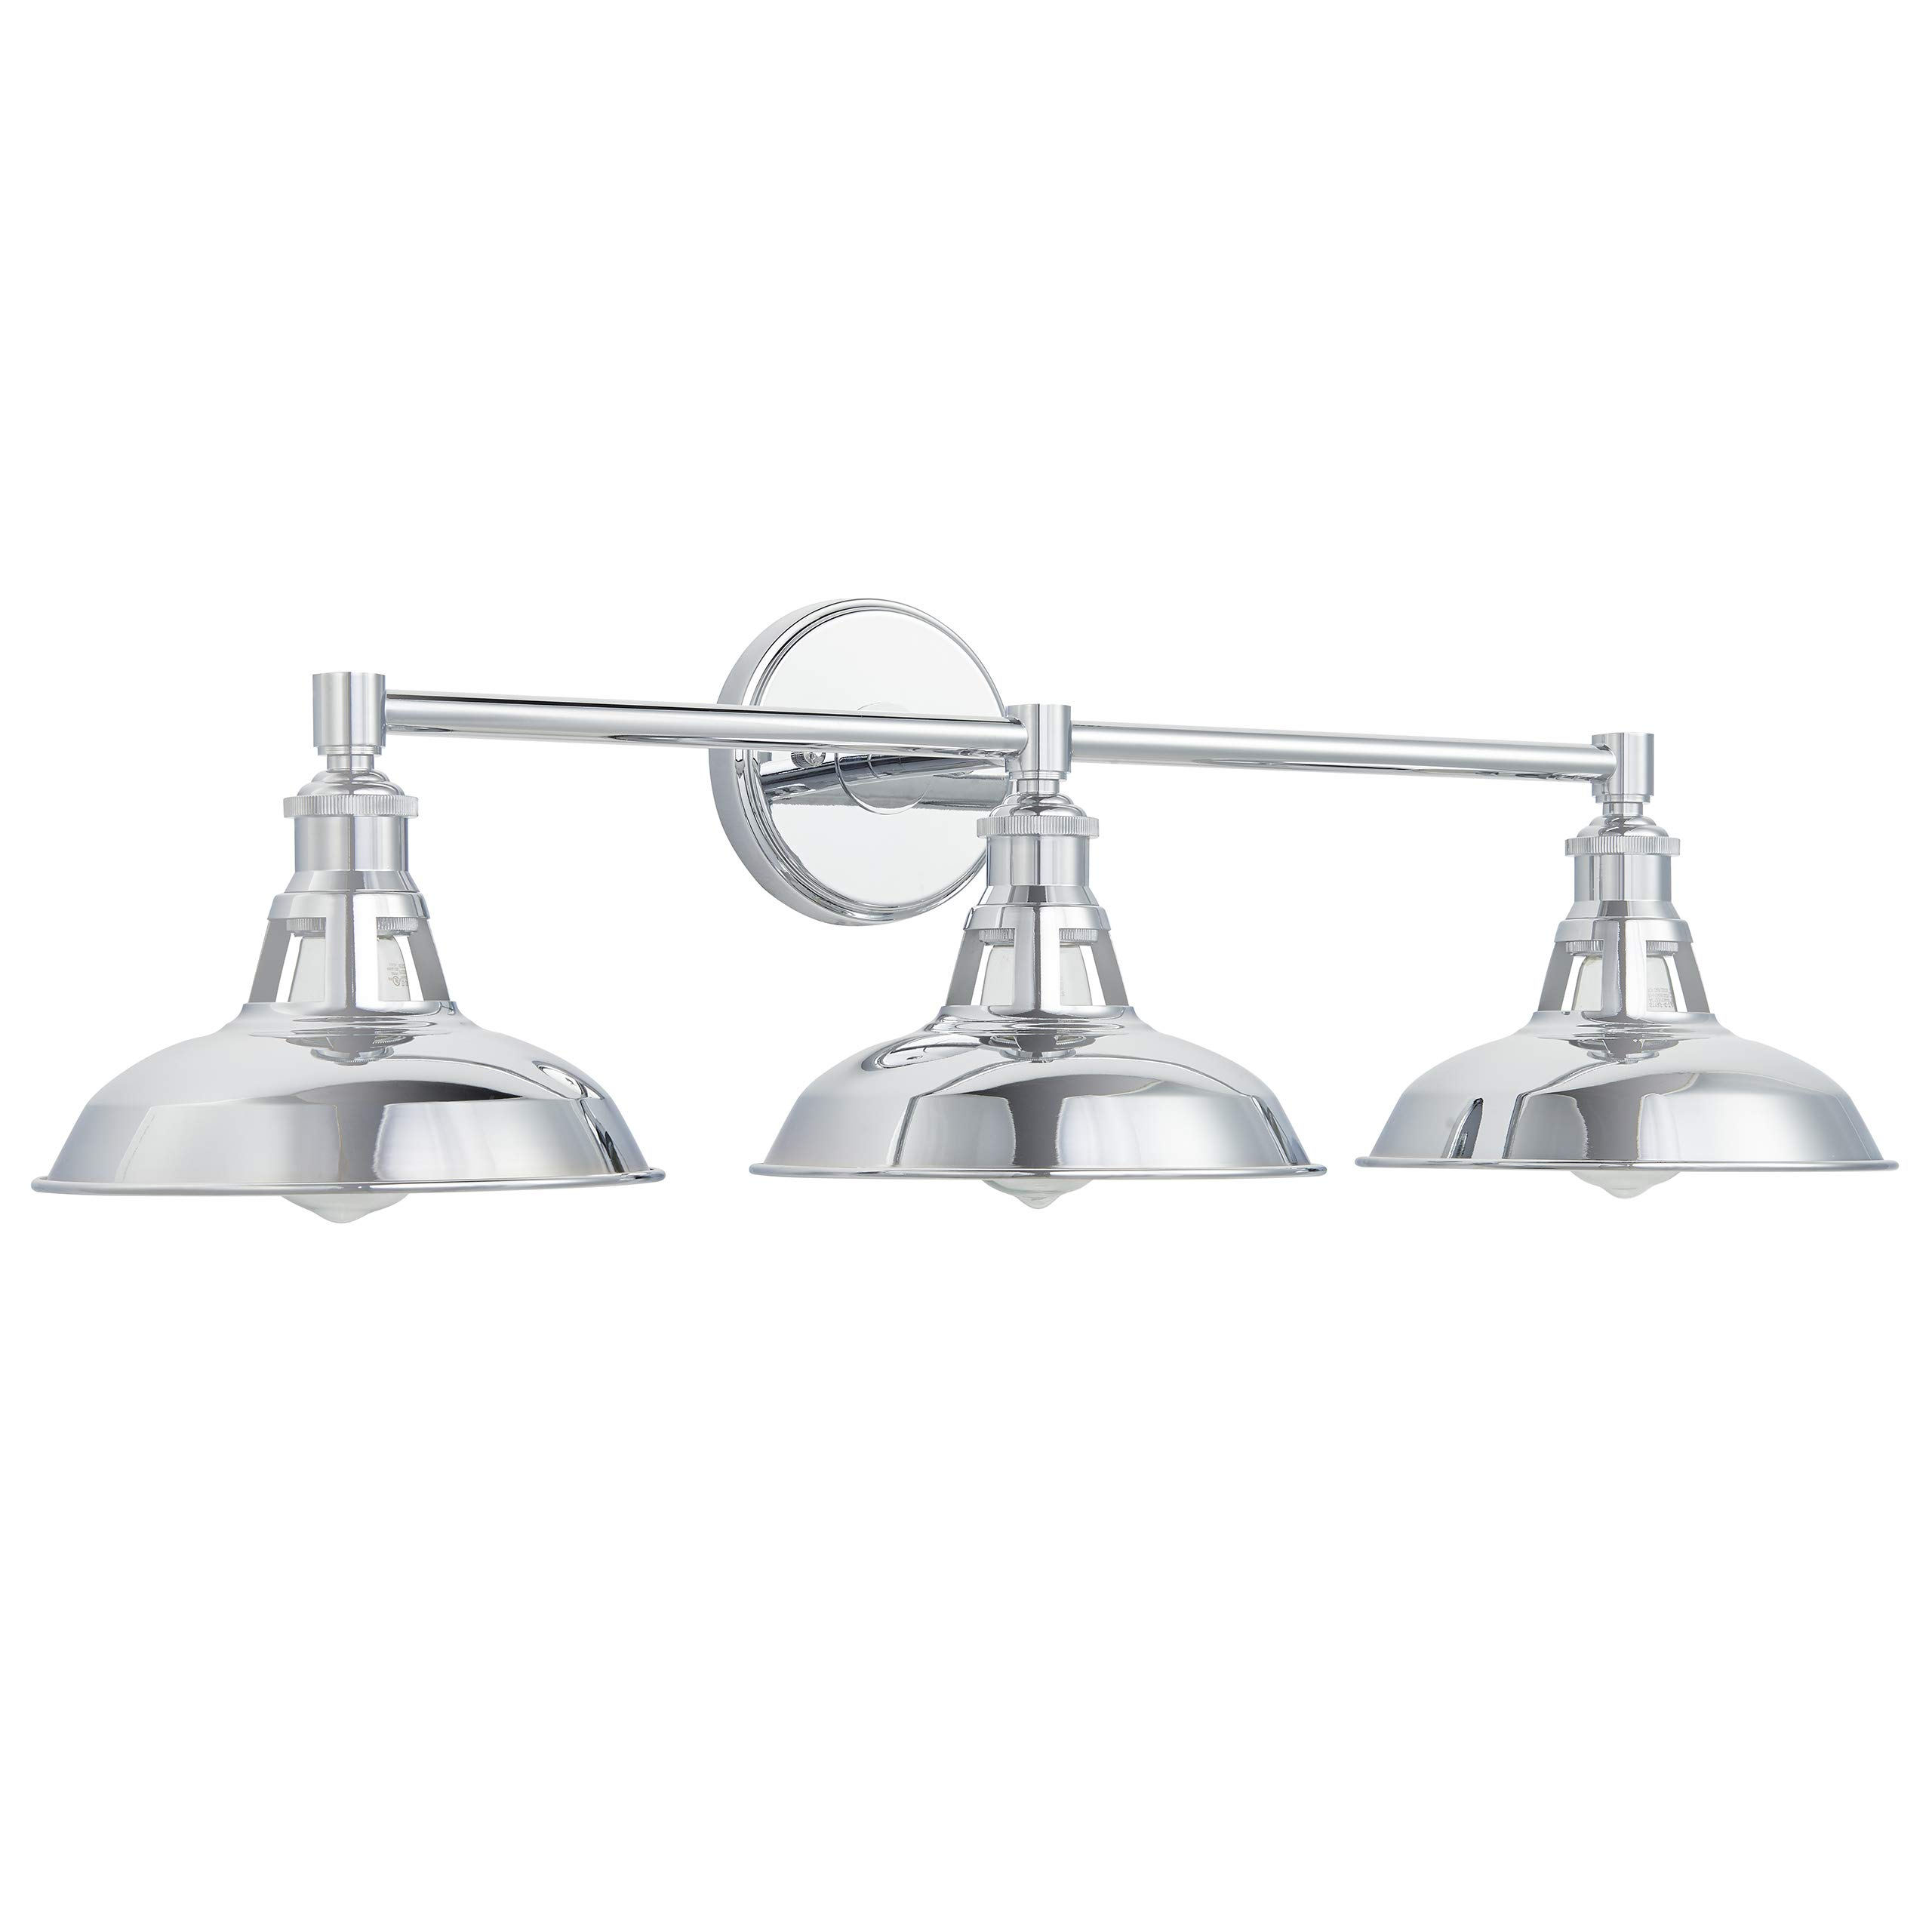 Olivera 3 Light Bathroom Vanity Lights | Chrome Industrial Wall Sconce with LED Bulbs LL-WL883-2PC